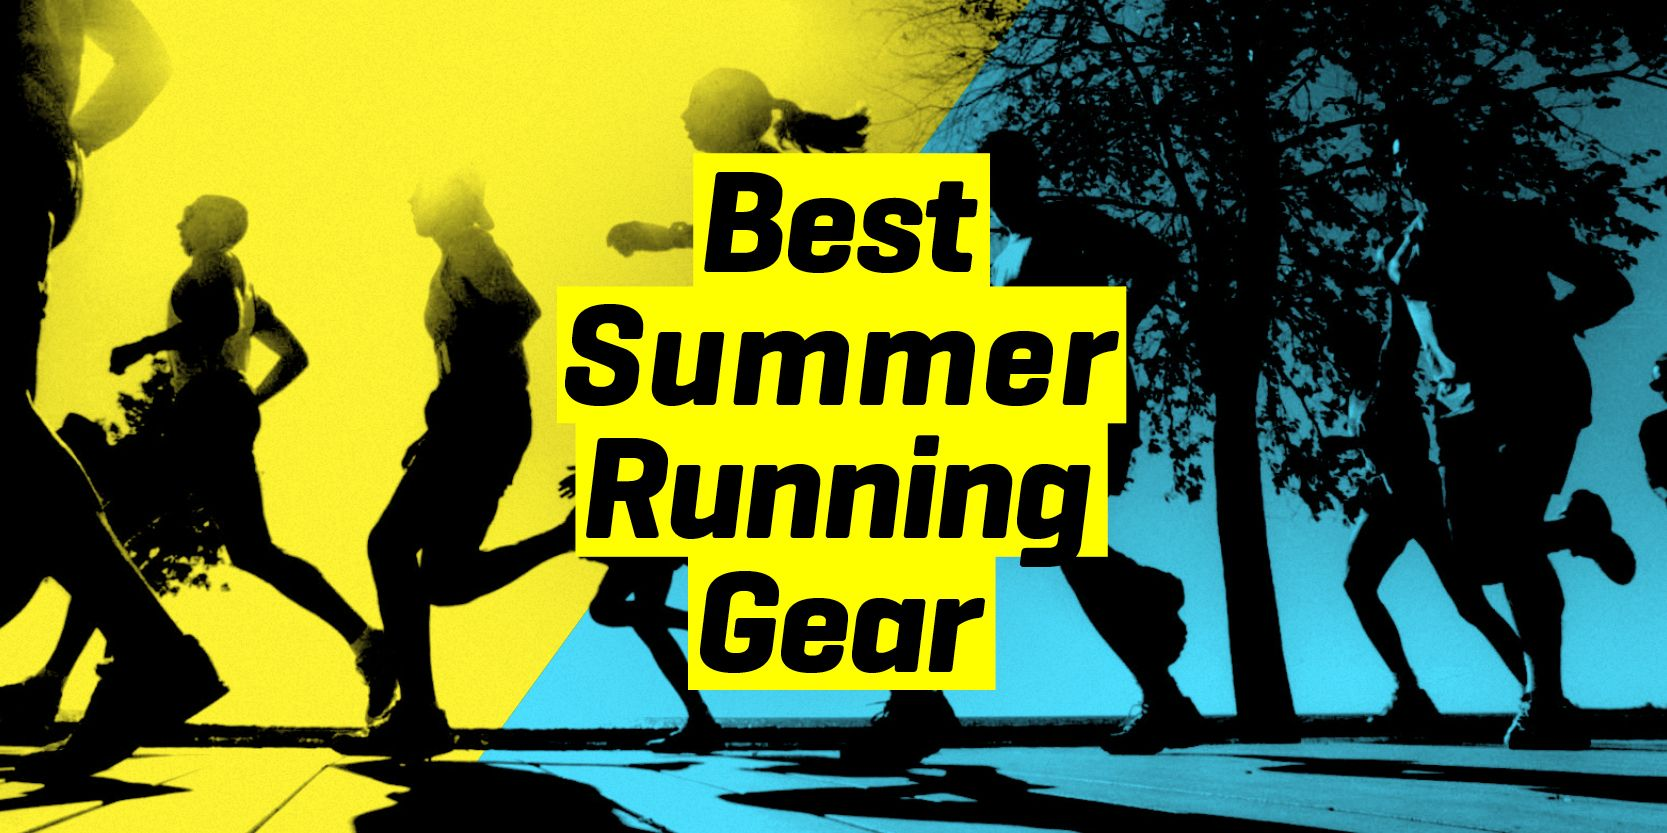 5d3c6706f04ad Summer 2019 Running Gear | What to Wear Running in Hot Weather